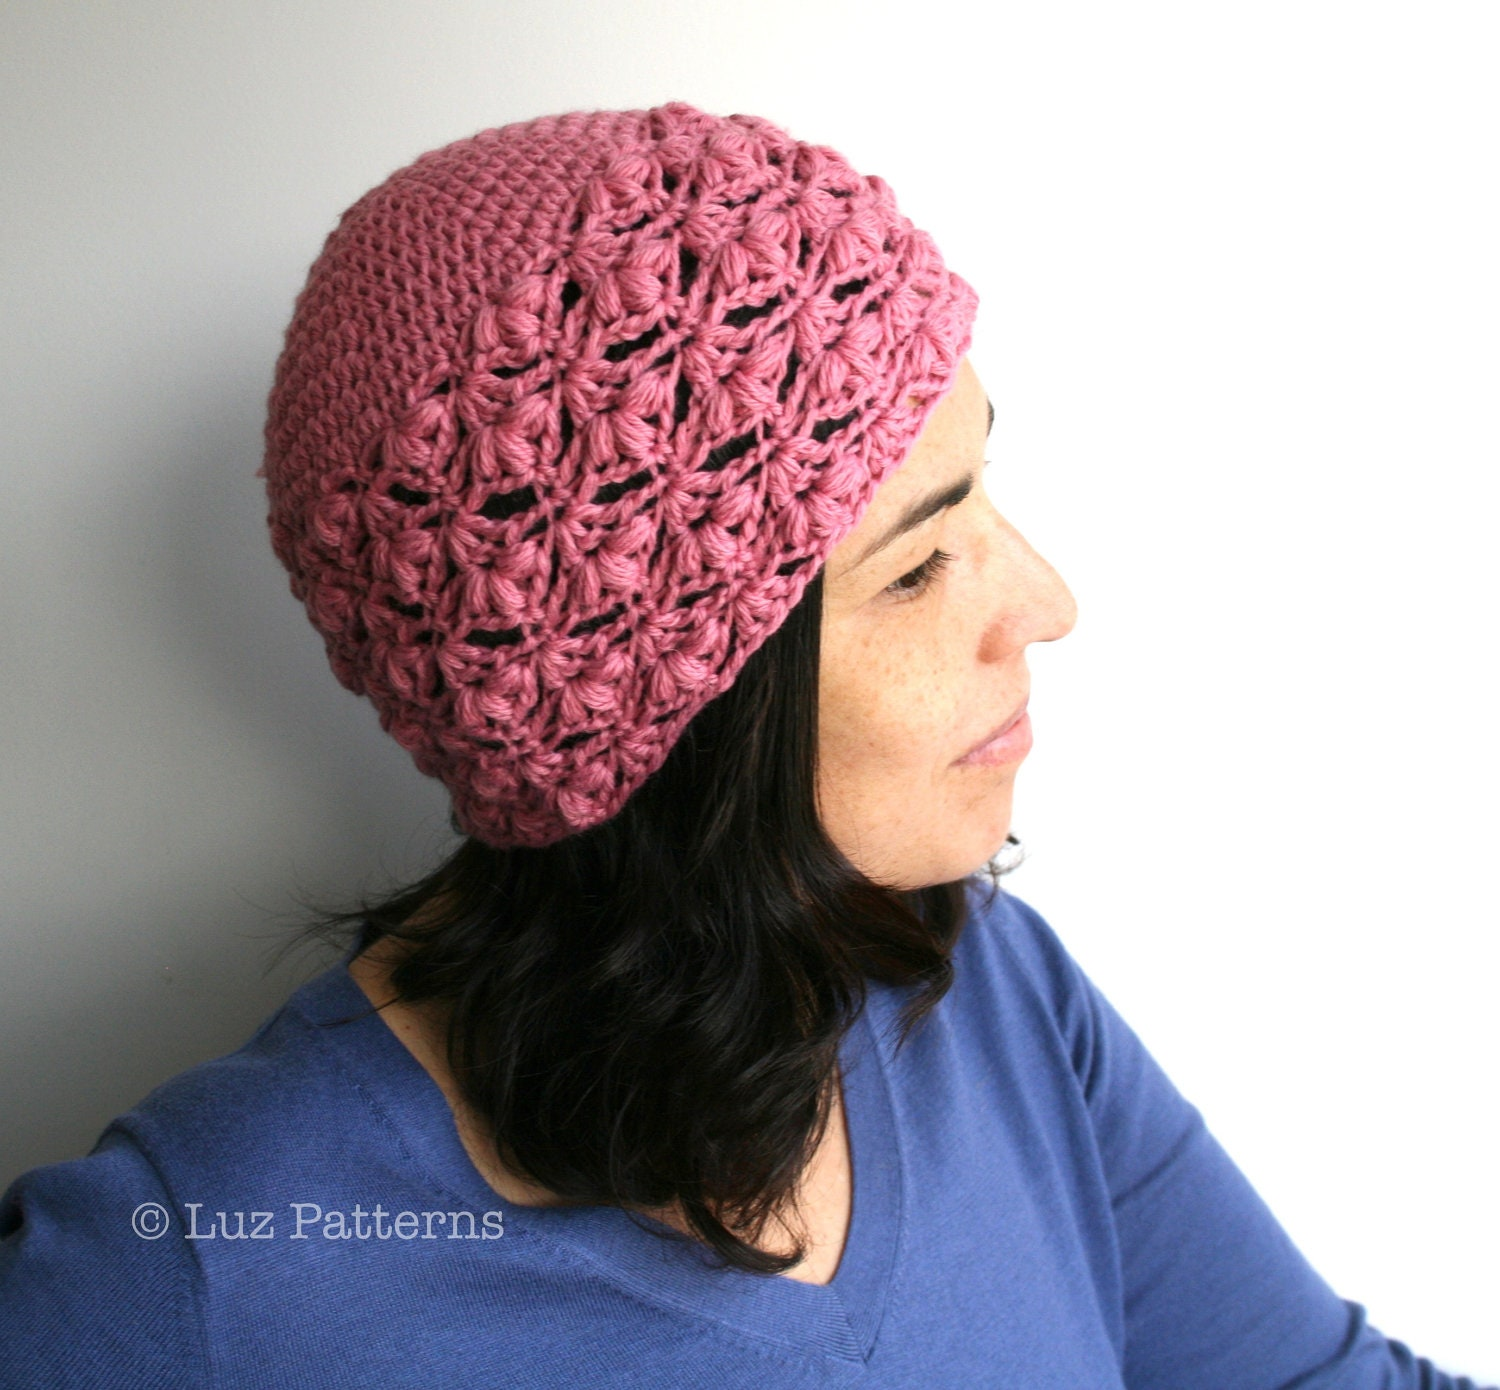 Crochet Hat Free Pattern Woman : Crochet hat PATTERN INSTANT DOWNLOAD crochet women beanie